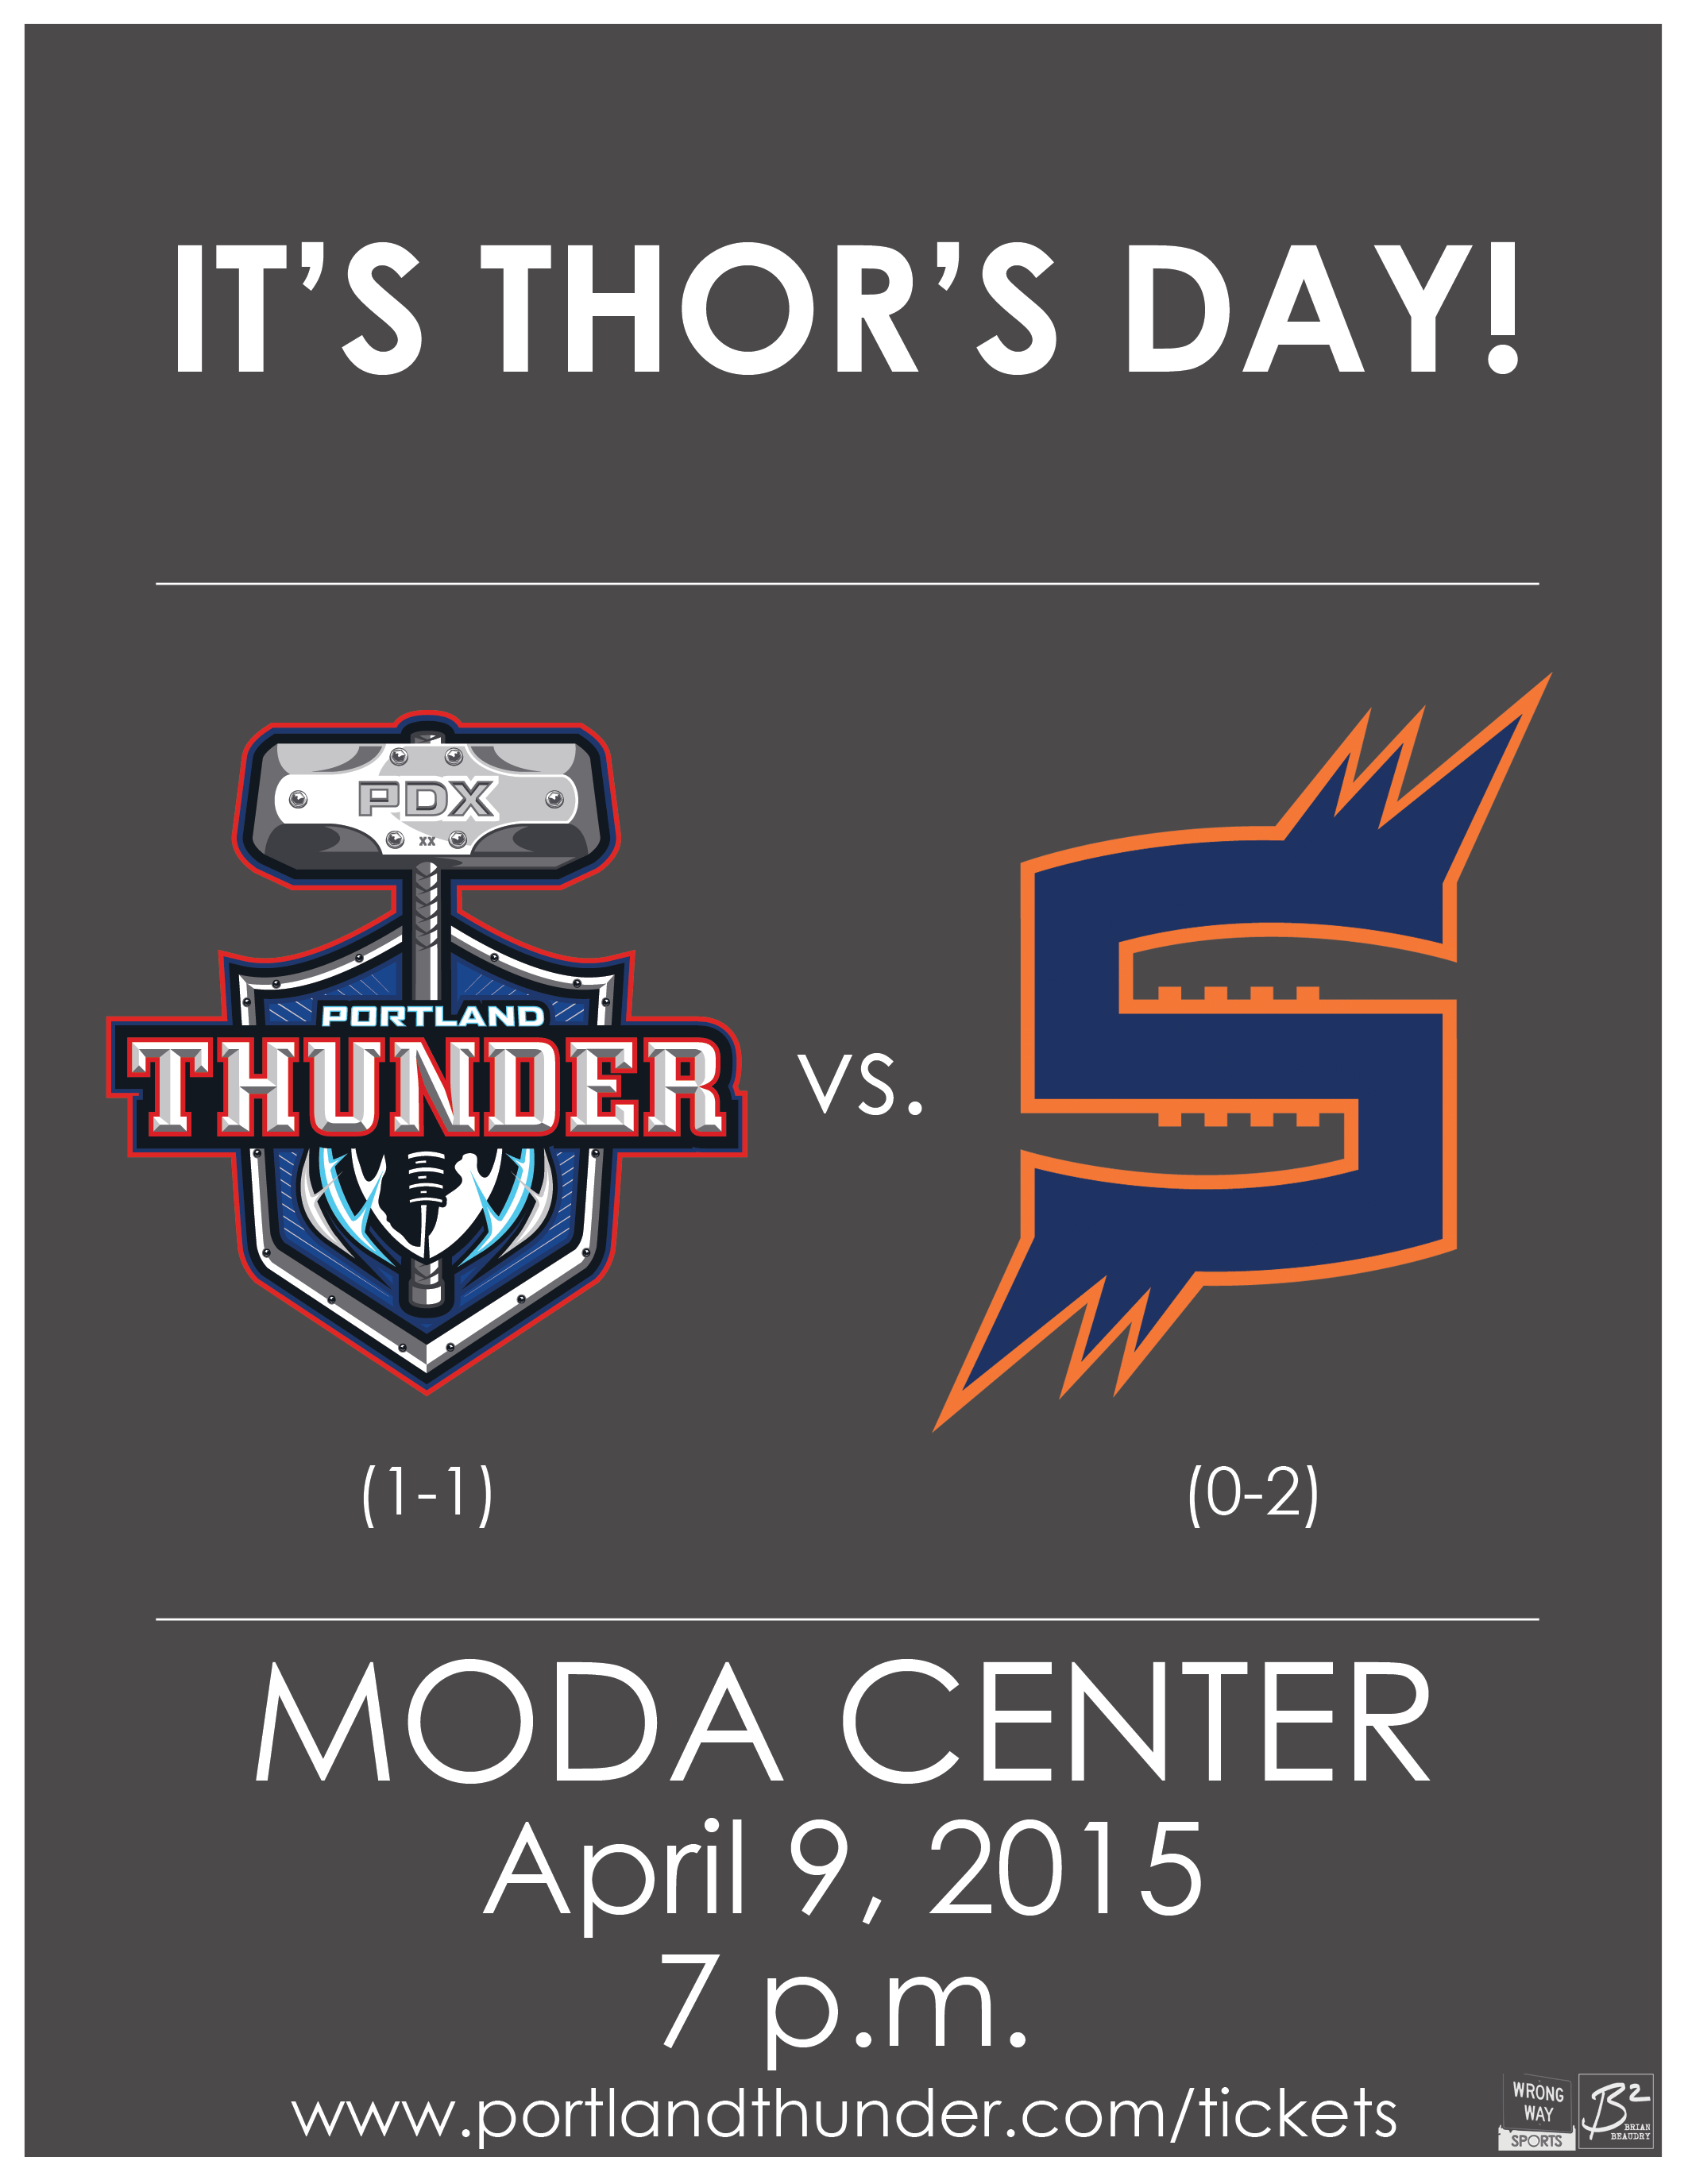 It's Thor's Day! Portland Thunder vs. Spokane Shock at the Moda Center. April 9, 2015, 7 p.m.